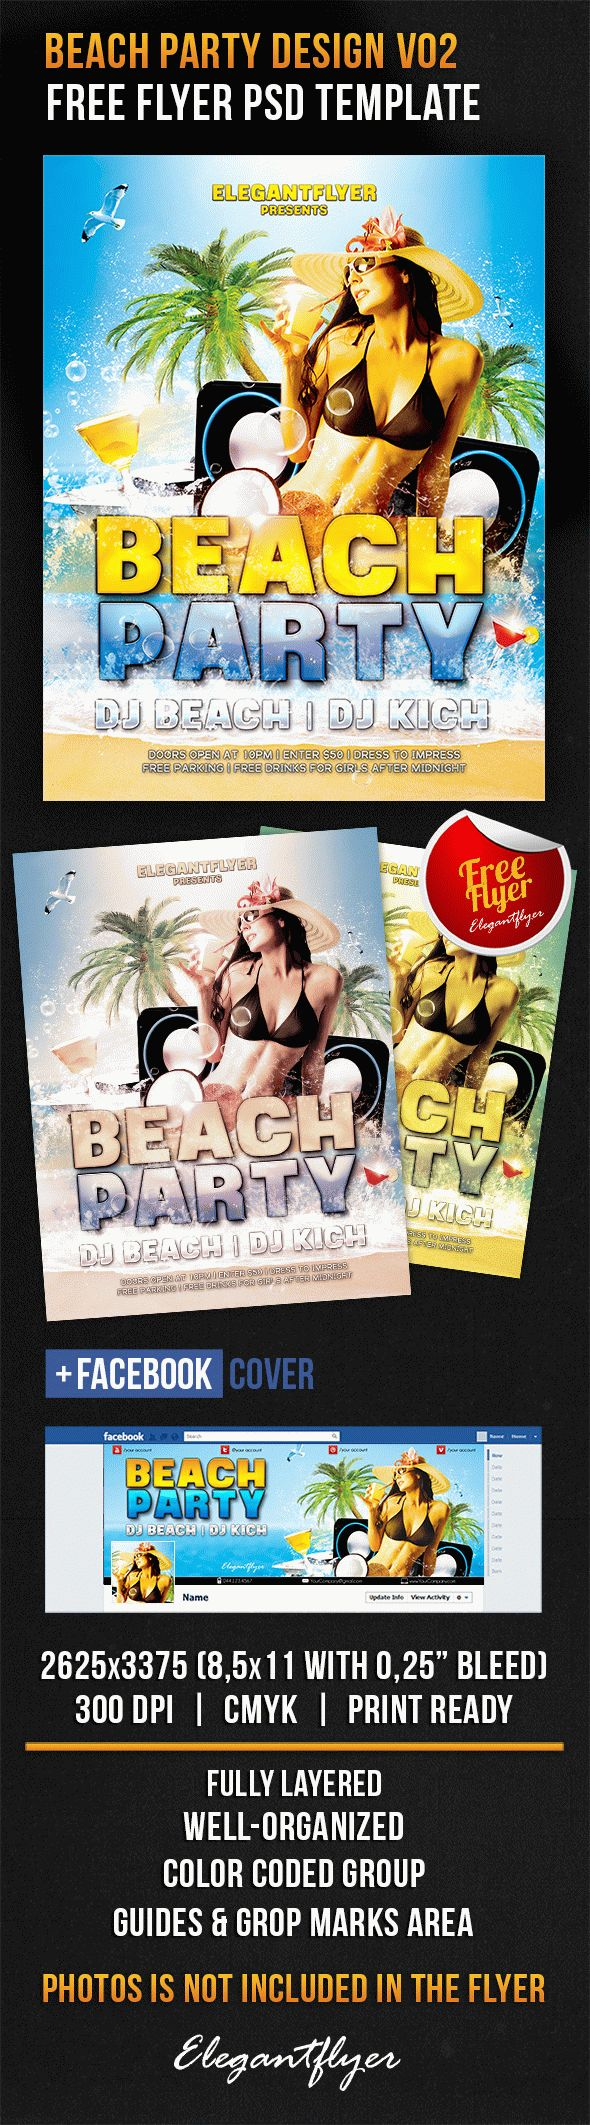 Beach Party Design V02 – Free Flyer PSD Template + Facebook Cover